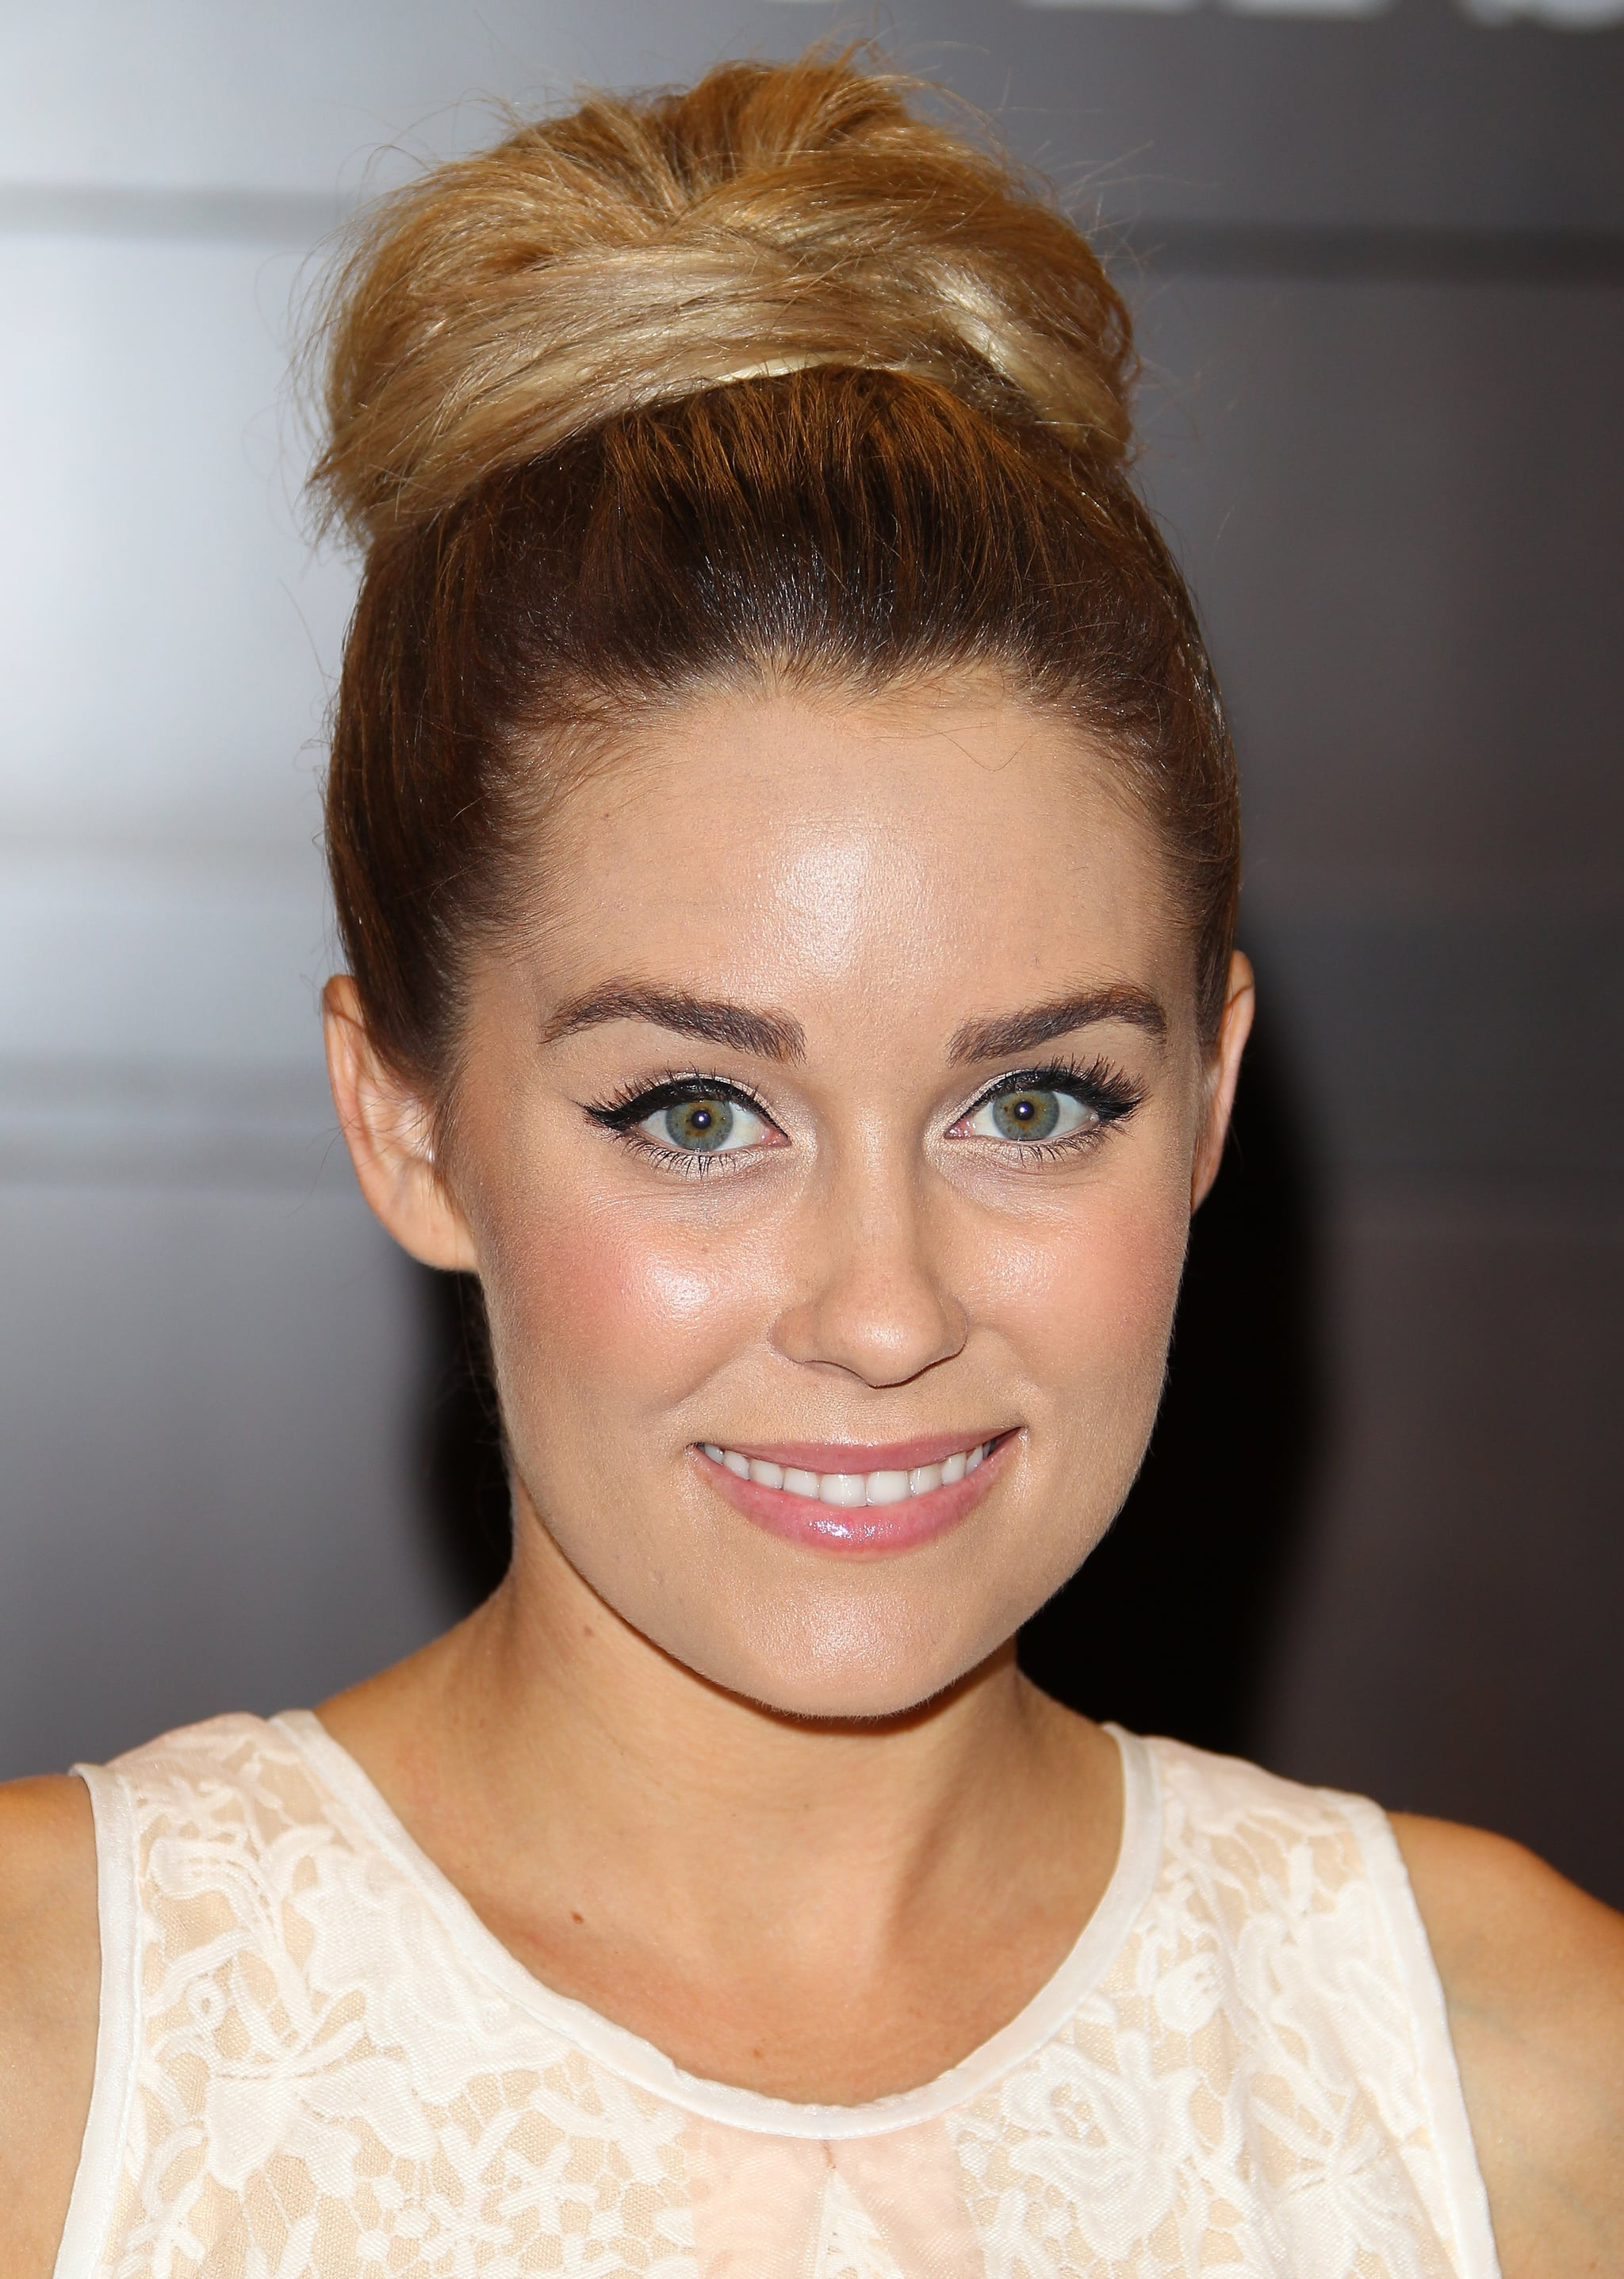 Lauren Conrad's style is more oversize roll than knot, but it's still an ideal look to keep hair off your neck during the hotter months.